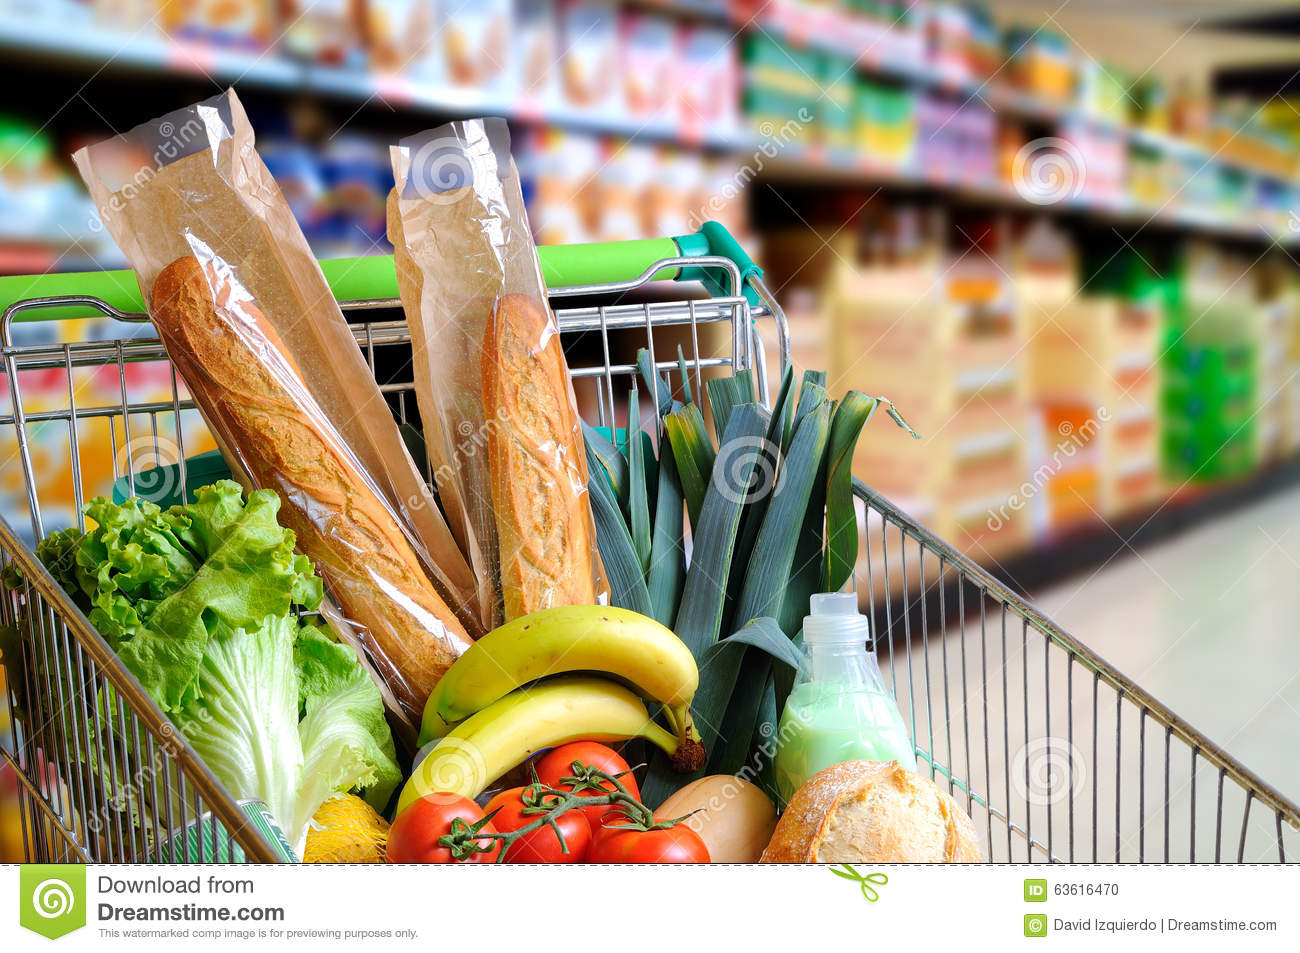 Shopping cart full of food in supermarket aisle elevated Shopping for home